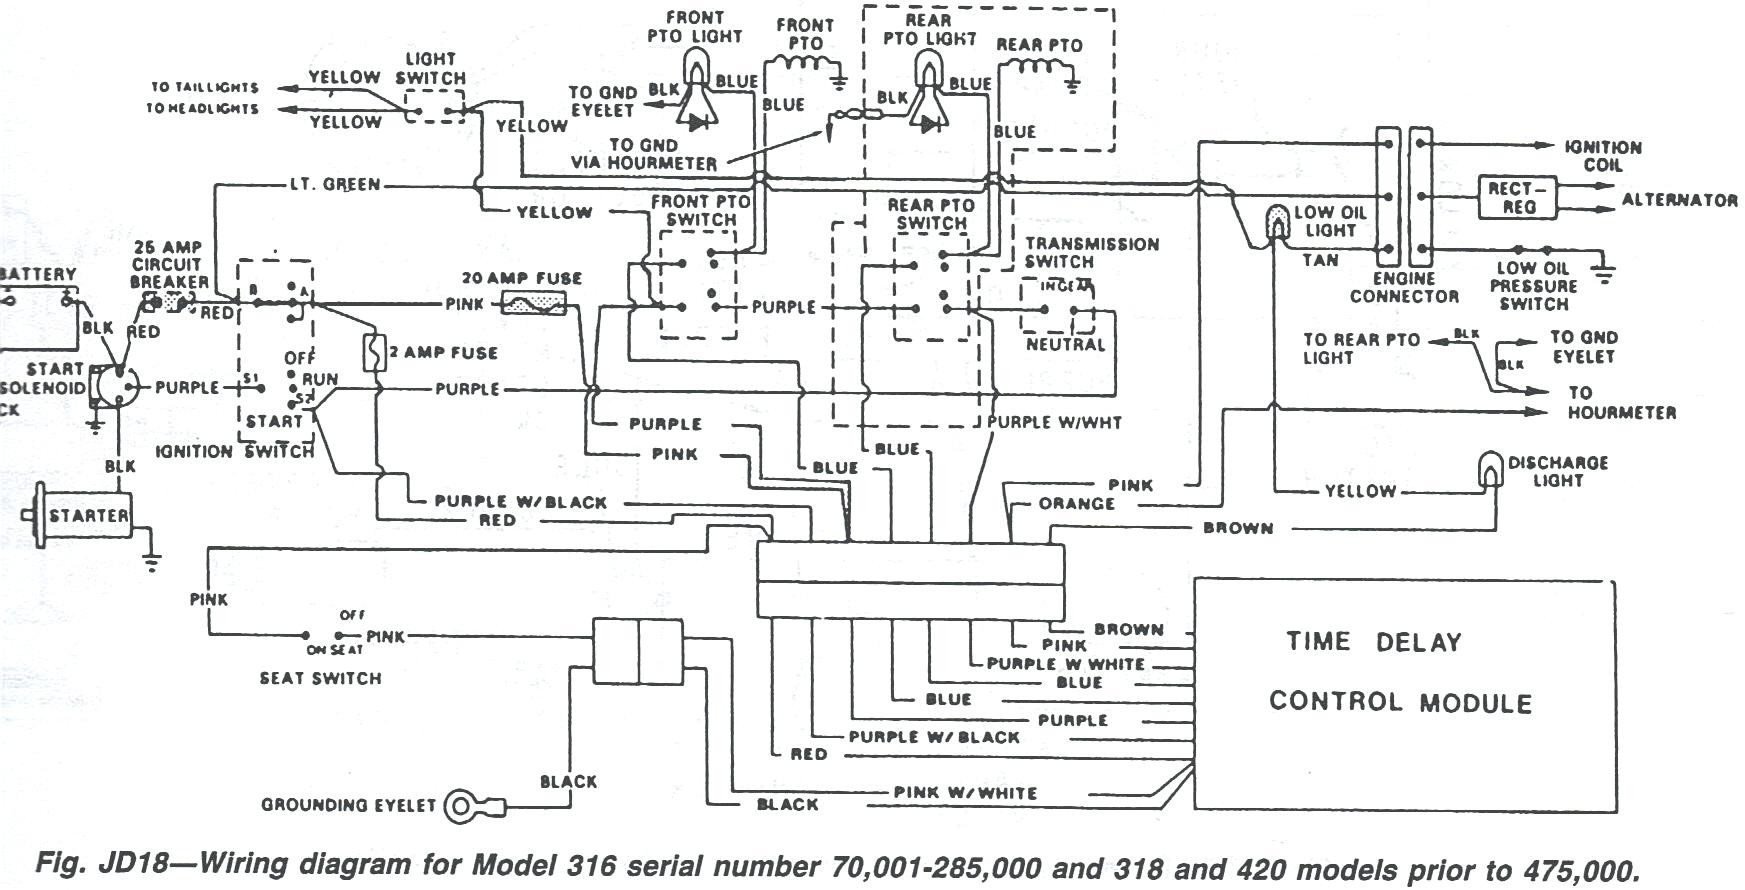 L120 Wiring Schematic - Wiring Diagram Dash on john deere 318 wiring-diagram, john deere solenoid wiring diagram, john deere l118 wiring harness, john deere tractor wiring, john deere lawn tractors brand, john deere lt120 transmission, john deere z225 wiring harness, john deere lawn tractor electrical diagram, john deere ignition wiring diagram, john deere wiring harness diagram, john deere 130 wiring-diagram, john deere stx38 wiring-diagram, john deere parts diagrams, john deere lx255 wiring-diagram, john deere l120 diagrams, john deere 50 wiring diagram, john deere la120 belt diagram, john deere d160 wiring harness, john deere mower wiring diagram, john deere model a wiring diagram,